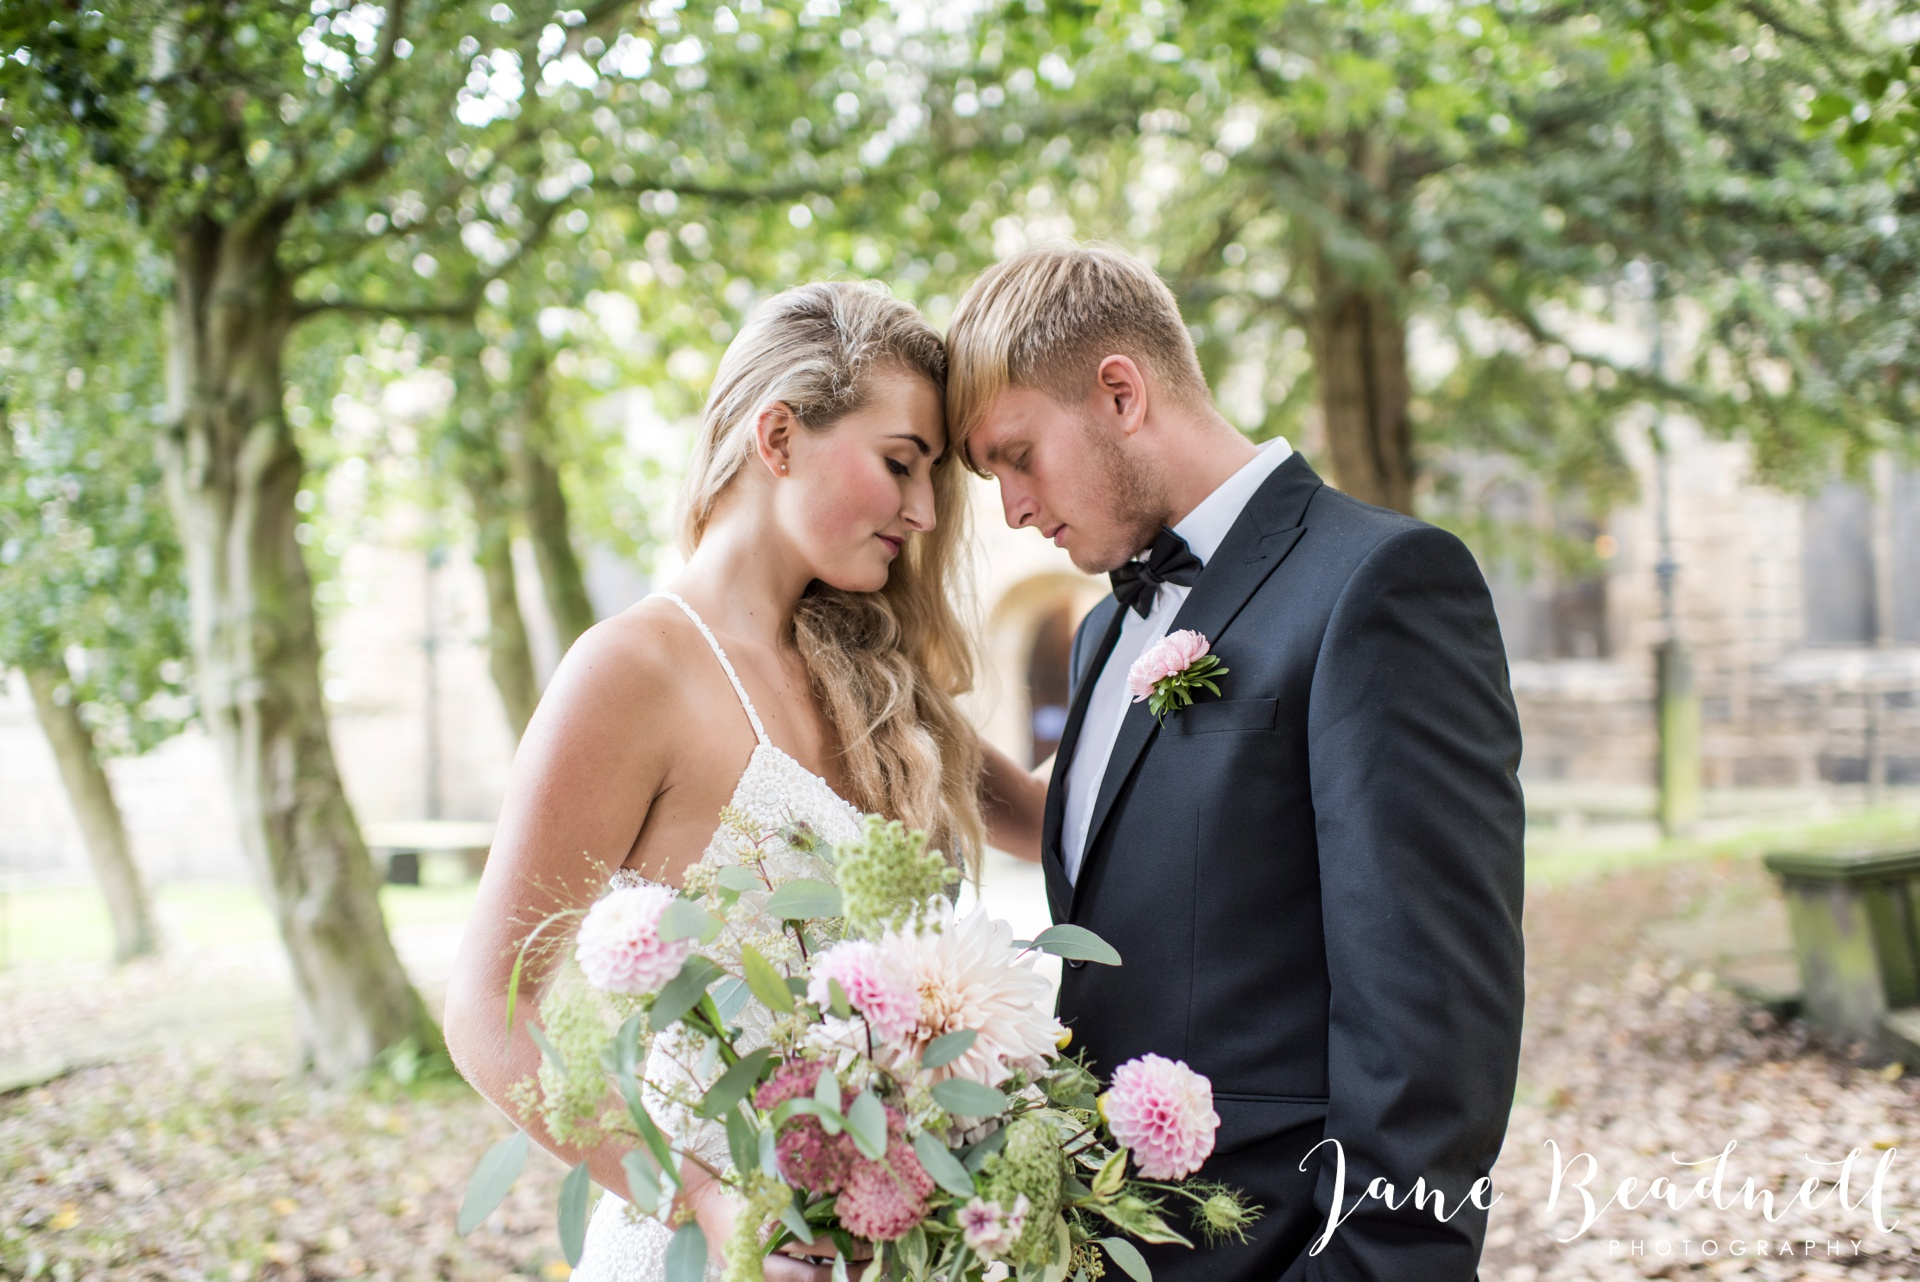 yorkshire-fine-art-wedding-photographer-jane-beadnell-photography-with-leafy-couture-wedding-flowers_0001